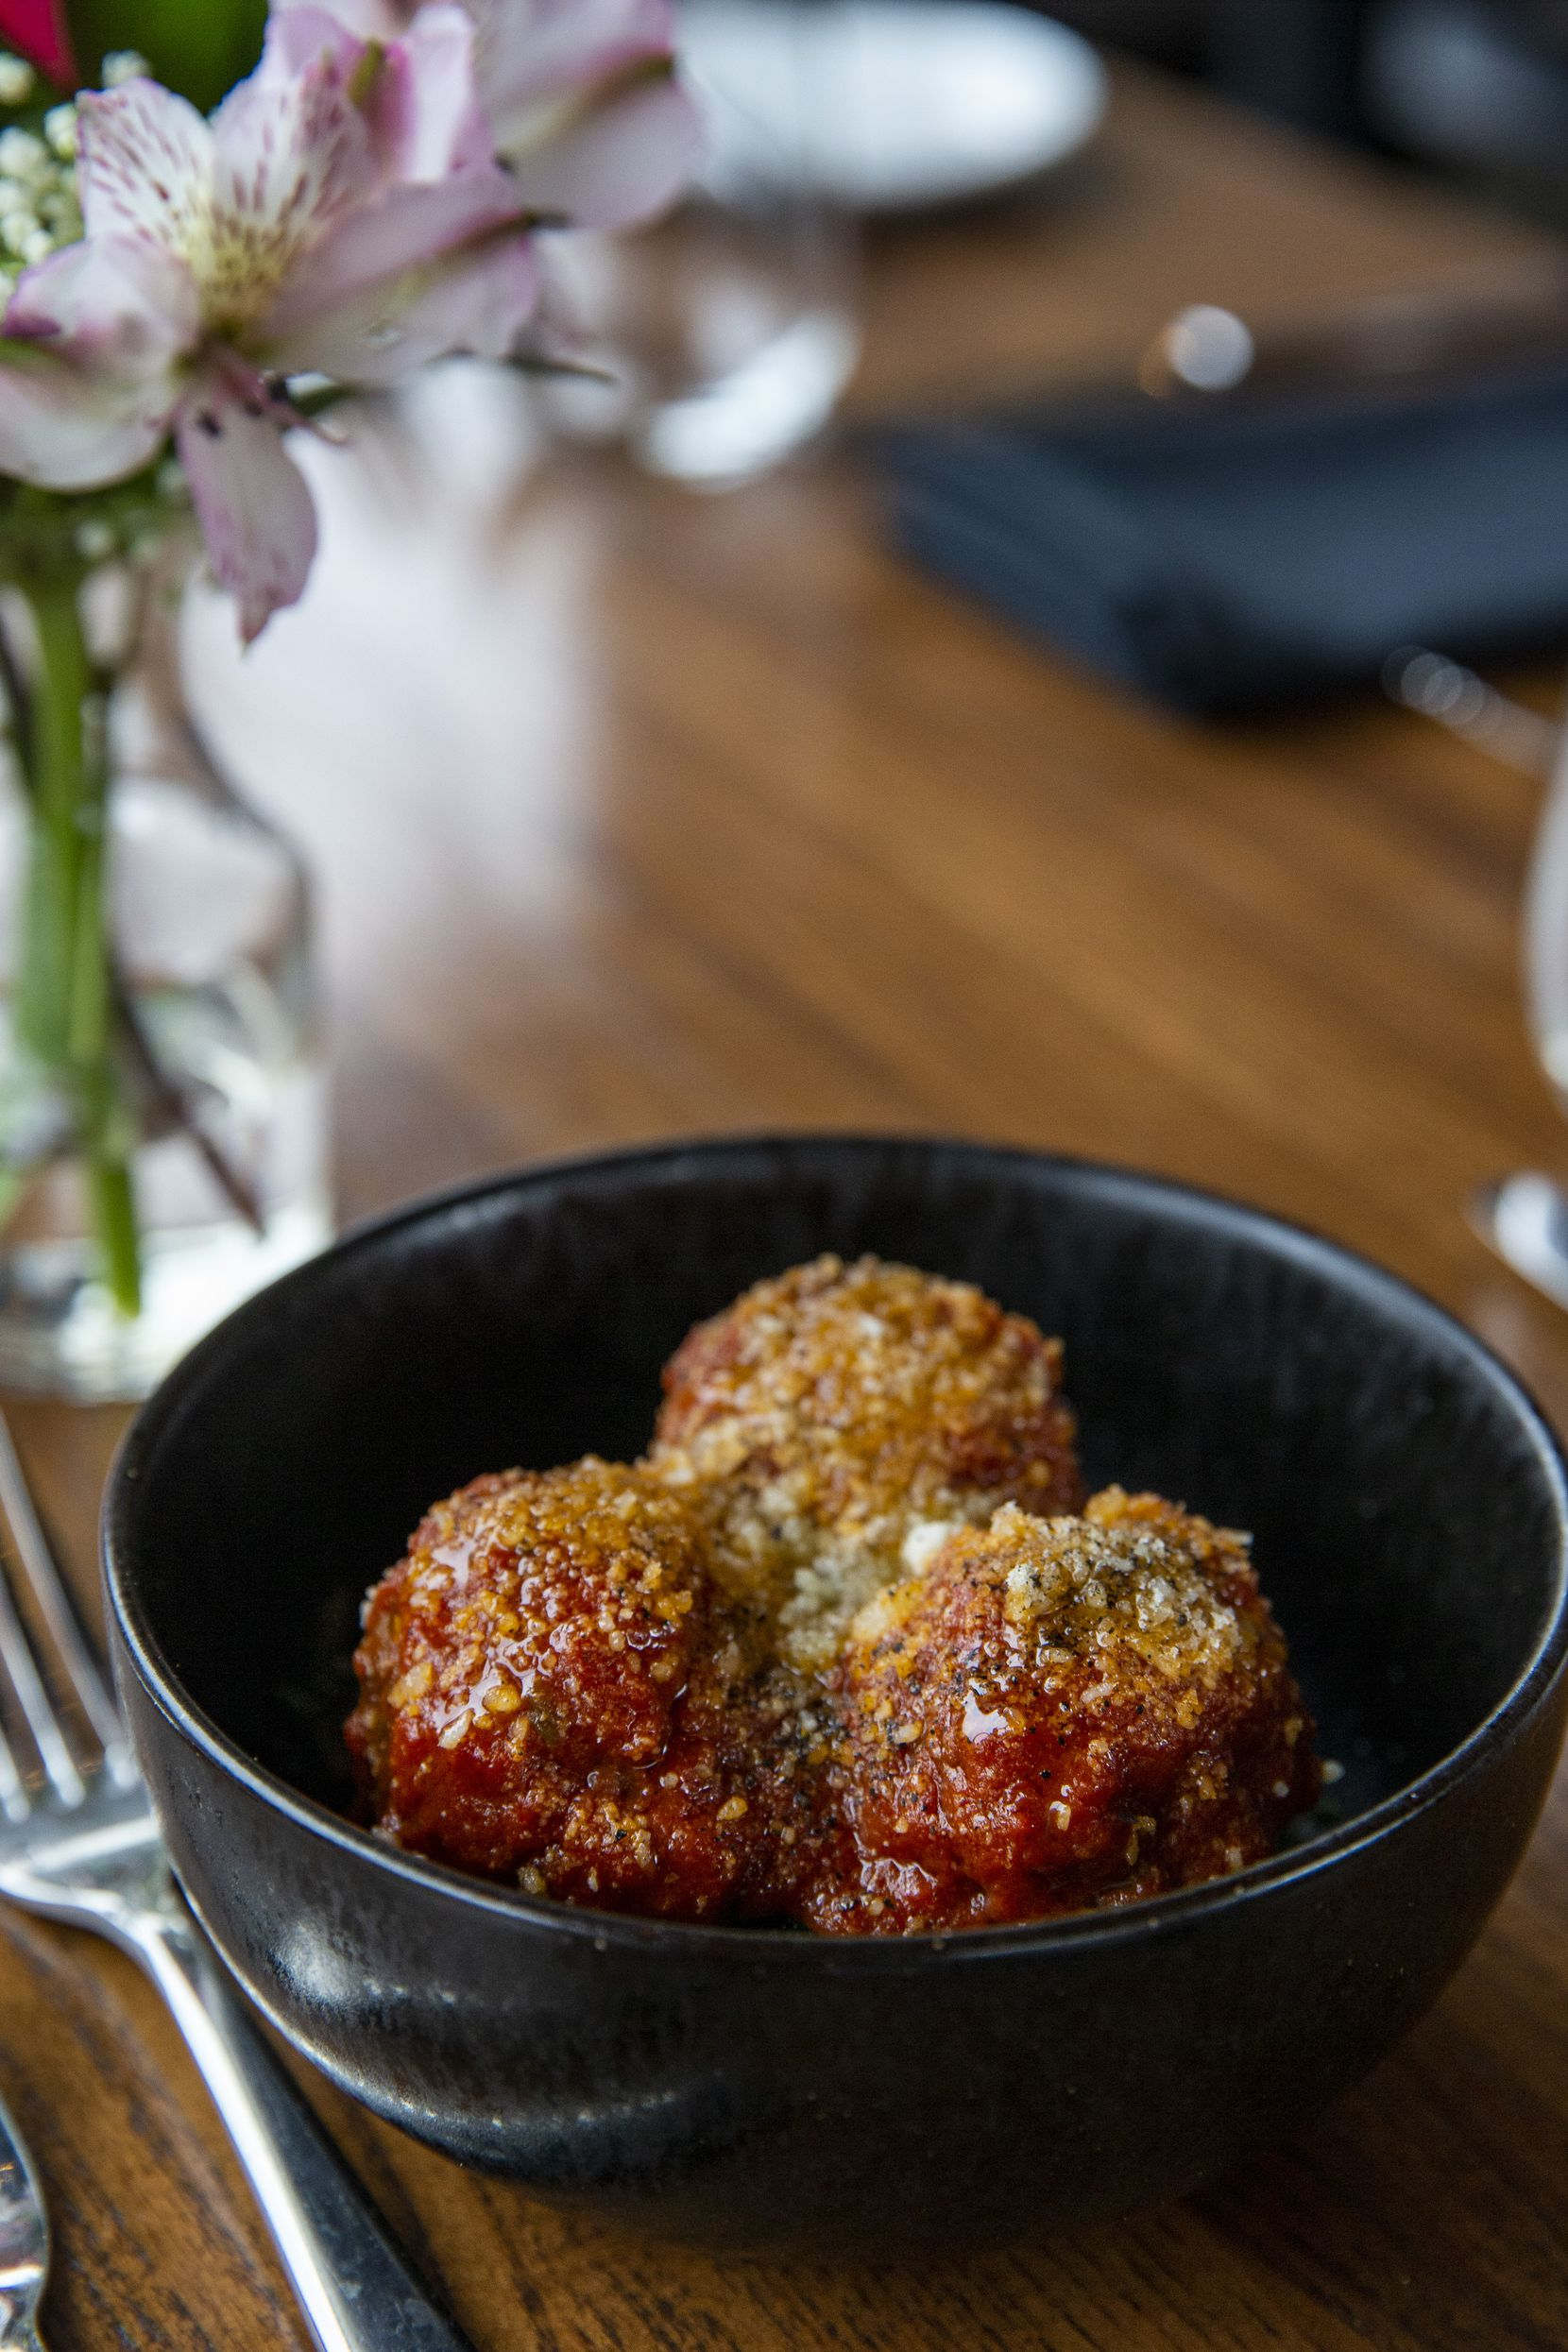 The lamb meatballs at Mille Lire restaurant in Dallas